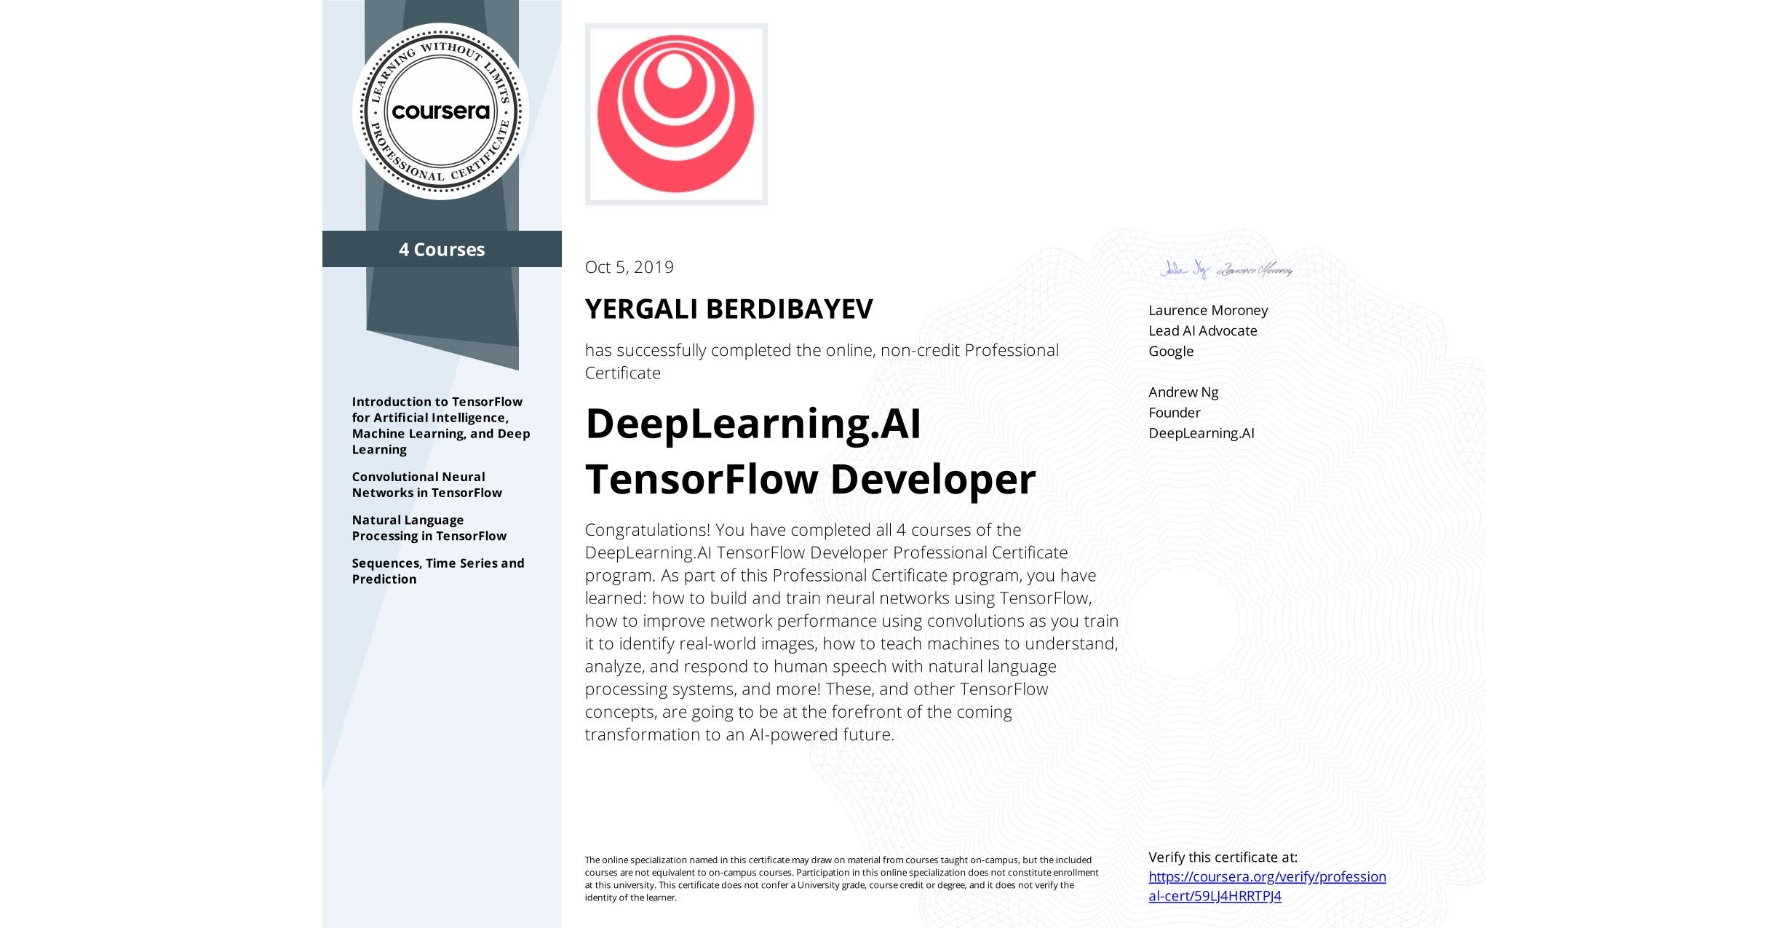 View certificate for Yergali Berdibayev, DeepLearning.AI TensorFlow Developer, offered through Coursera. Congratulations! You have completed all 4 courses of the DeepLearning.AI TensorFlow Developer Professional Certificate program.   As part of this Professional Certificate program, you have learned: how to build and train neural networks using TensorFlow, how to improve network performance using convolutions as you train it to identify real-world images, how to teach machines to understand, analyze, and respond to human speech with natural language processing systems, and more!  These, and other TensorFlow concepts, are going to be at the forefront of the coming transformation to an AI-powered future.